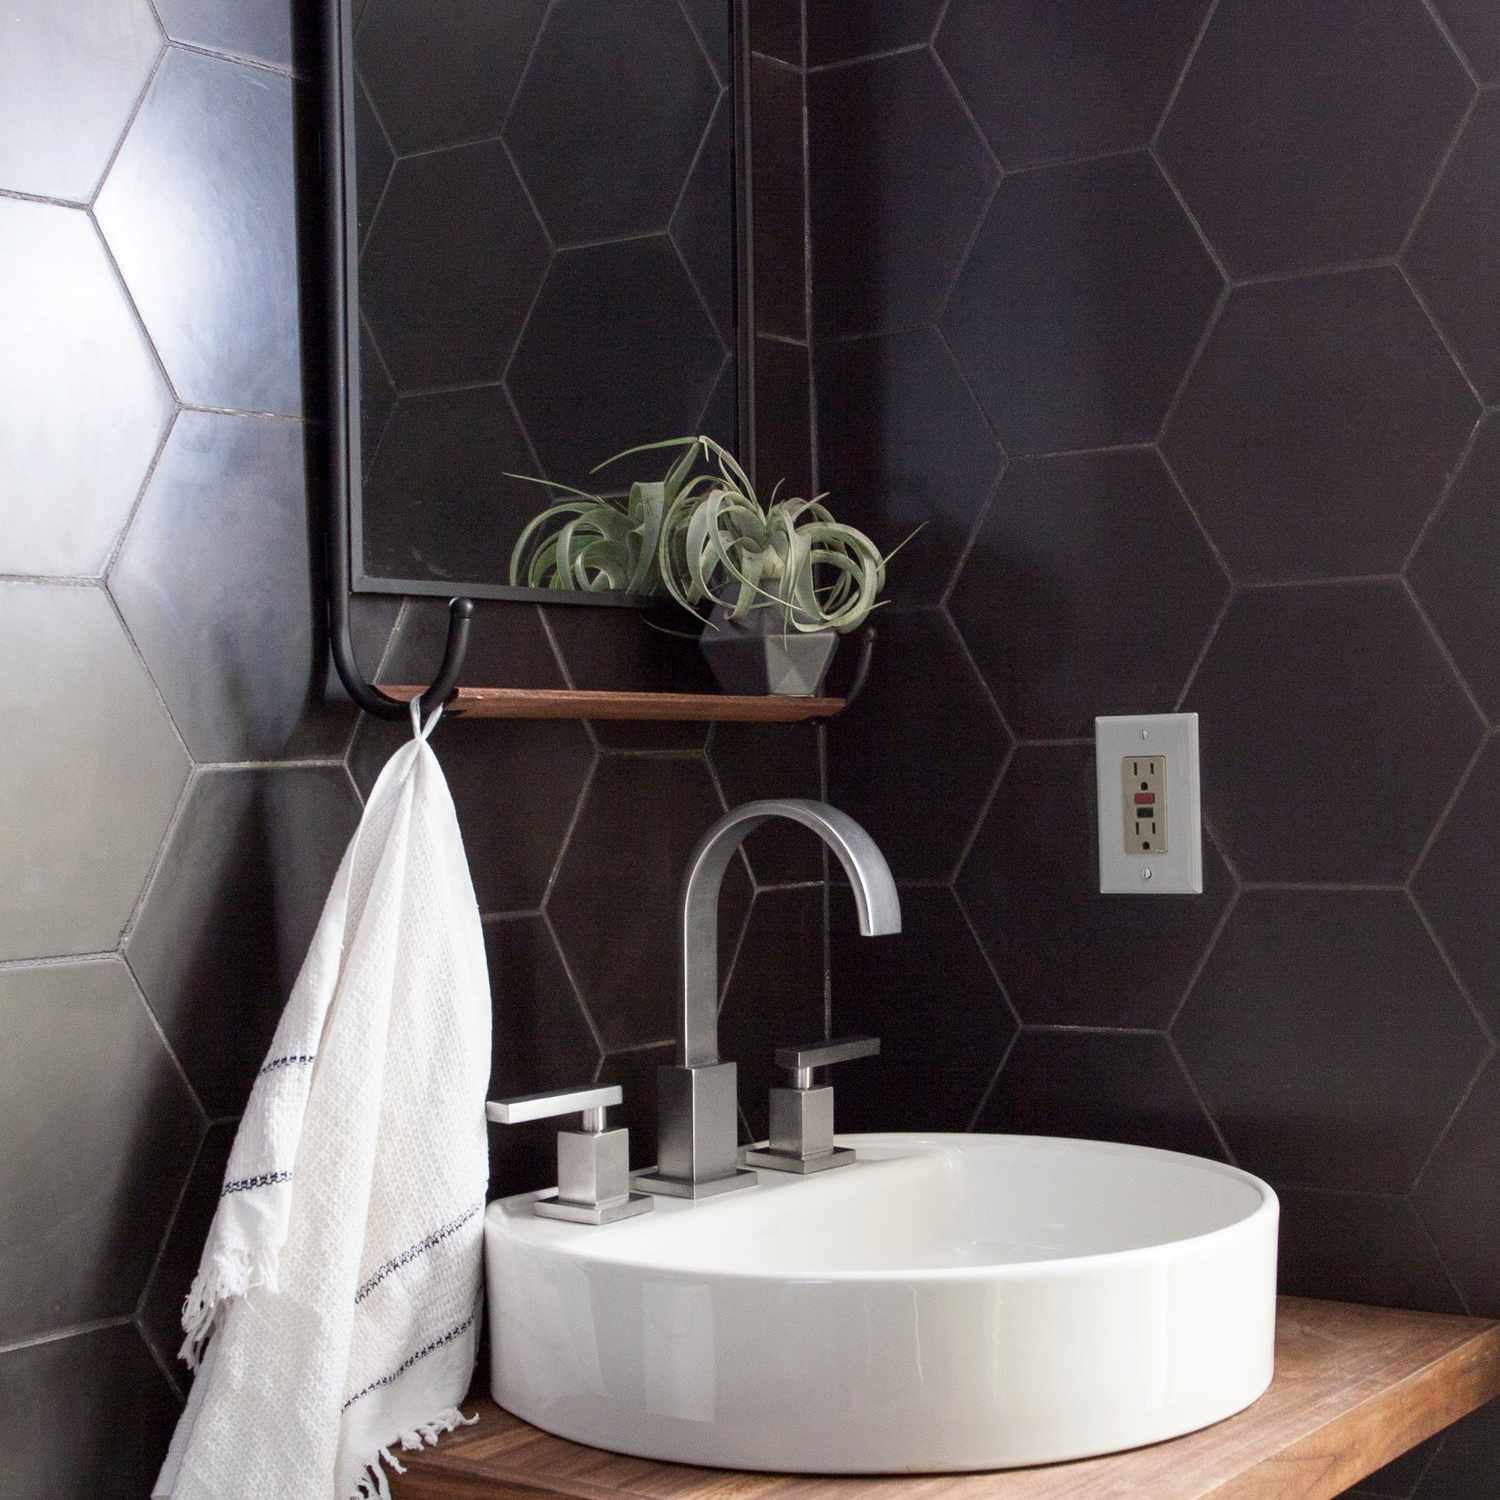 A bathroom lined with black tiles